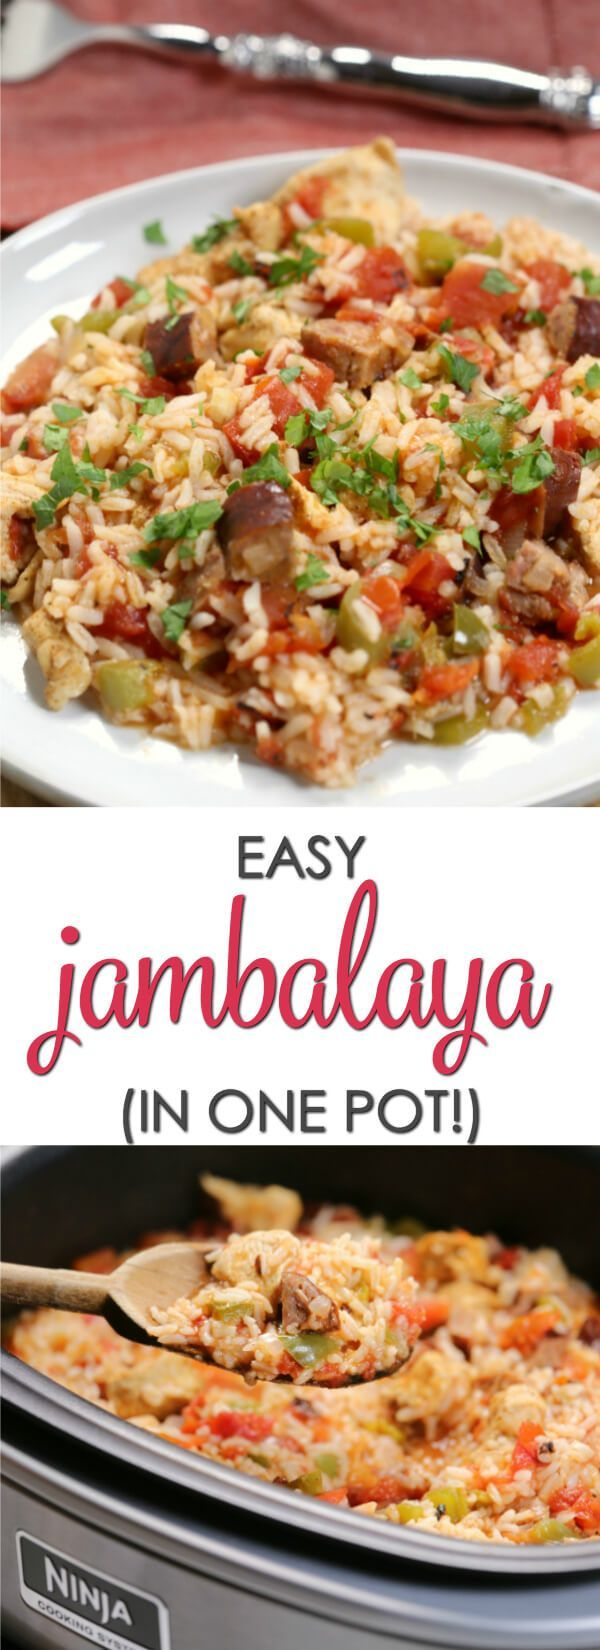 This easy Louisiana Jambalaya Recipe is perfect for busy nights. With very little hands-on time it's easy to make and packed with flavor. #NinjaDeliciousDoneEasy  #NinjaPartner #onepot